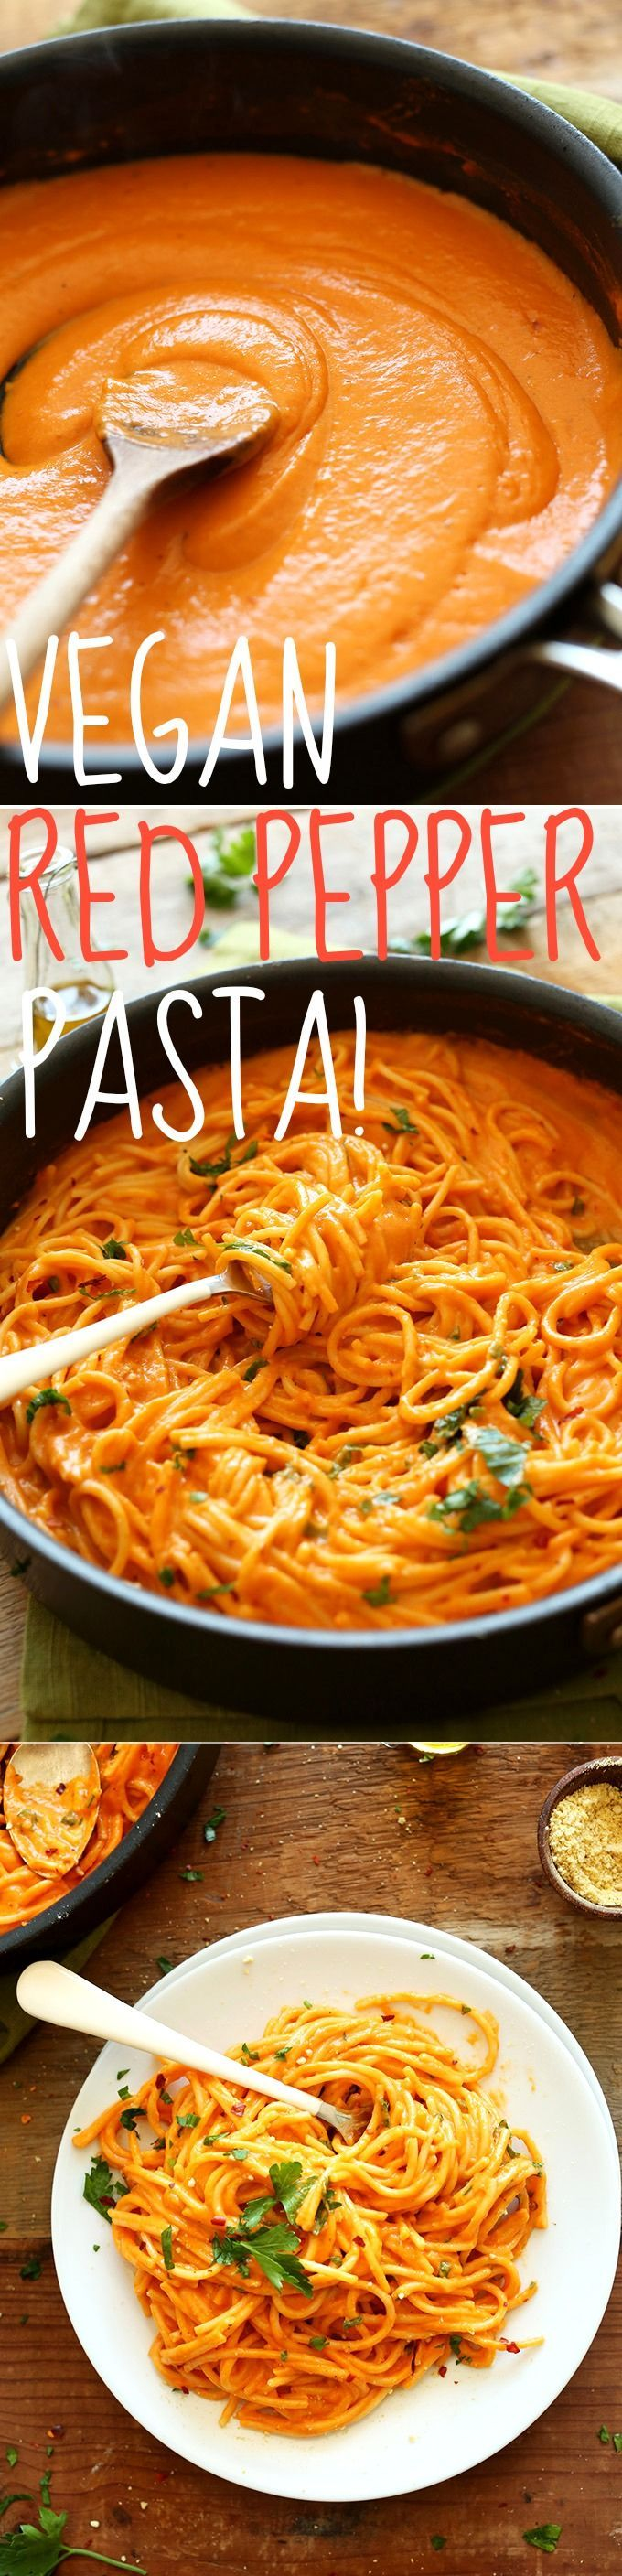 10-INGREDIENT Vegan Gluten Free Pasta! A creamy roasted red pepper sauce in perfectly al dente gluten free noodles. Recipe via minimalistbaker.com.